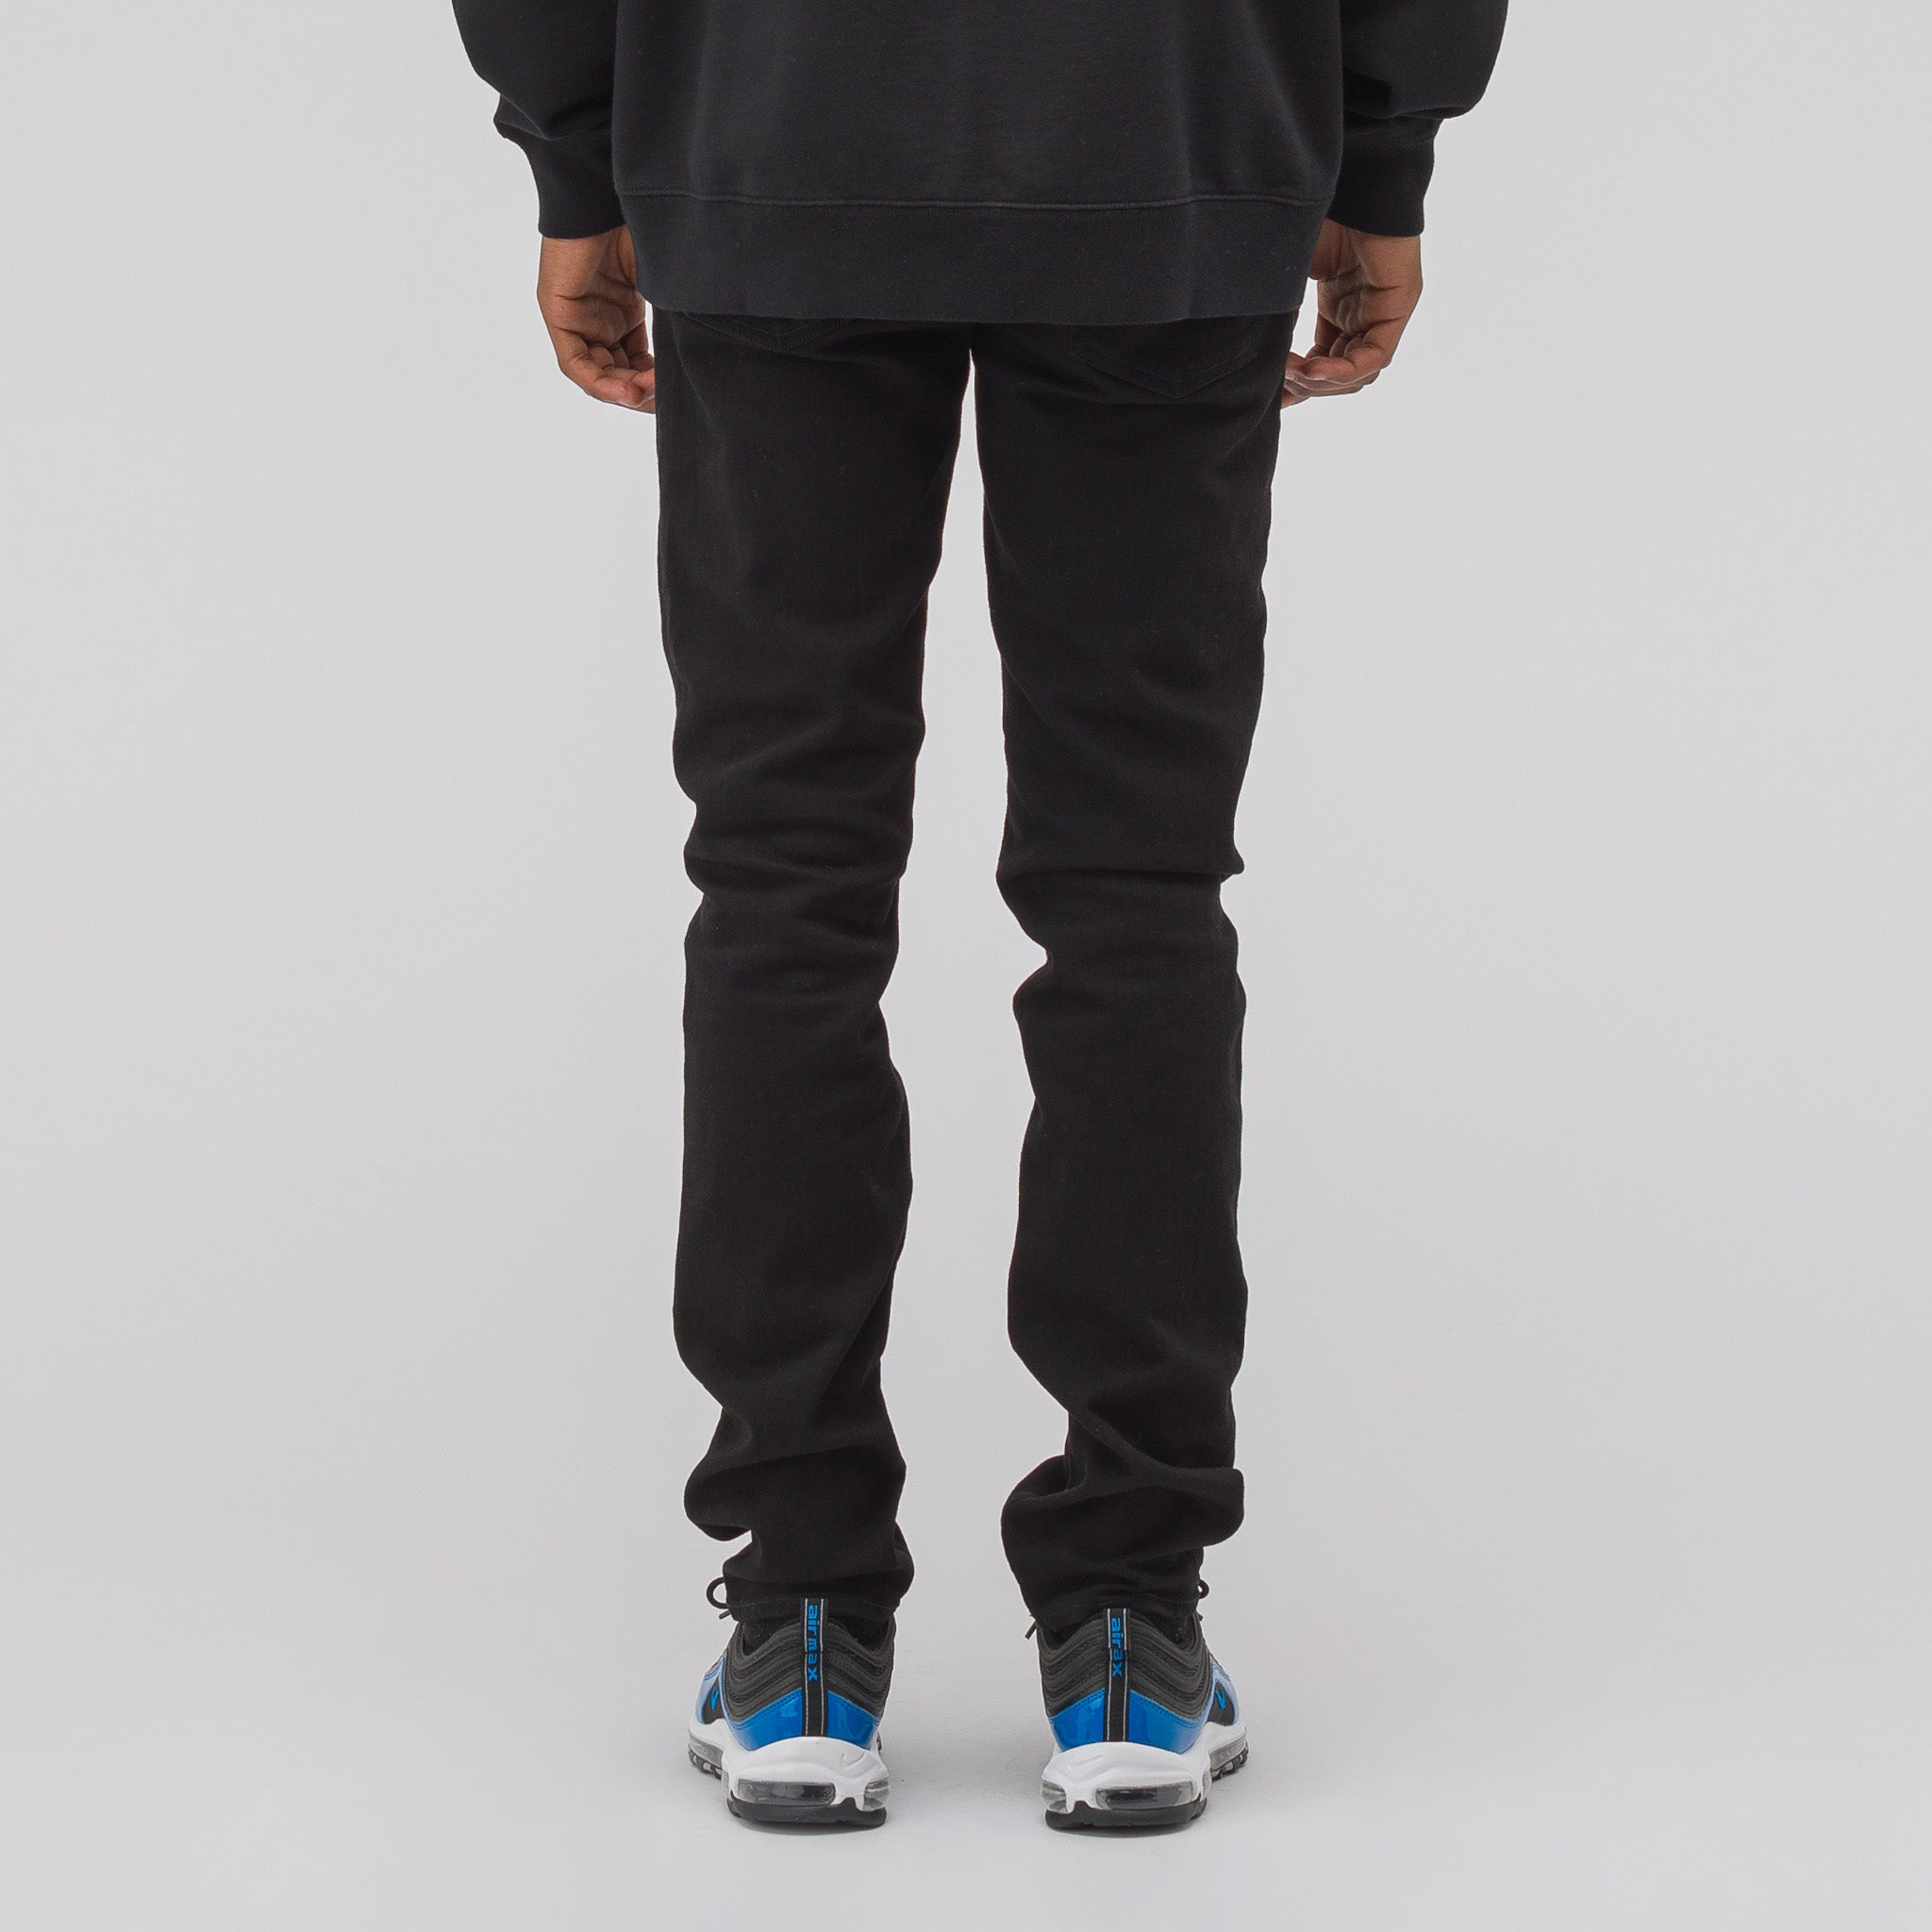 J1BQ1 Jeans in Black Wash